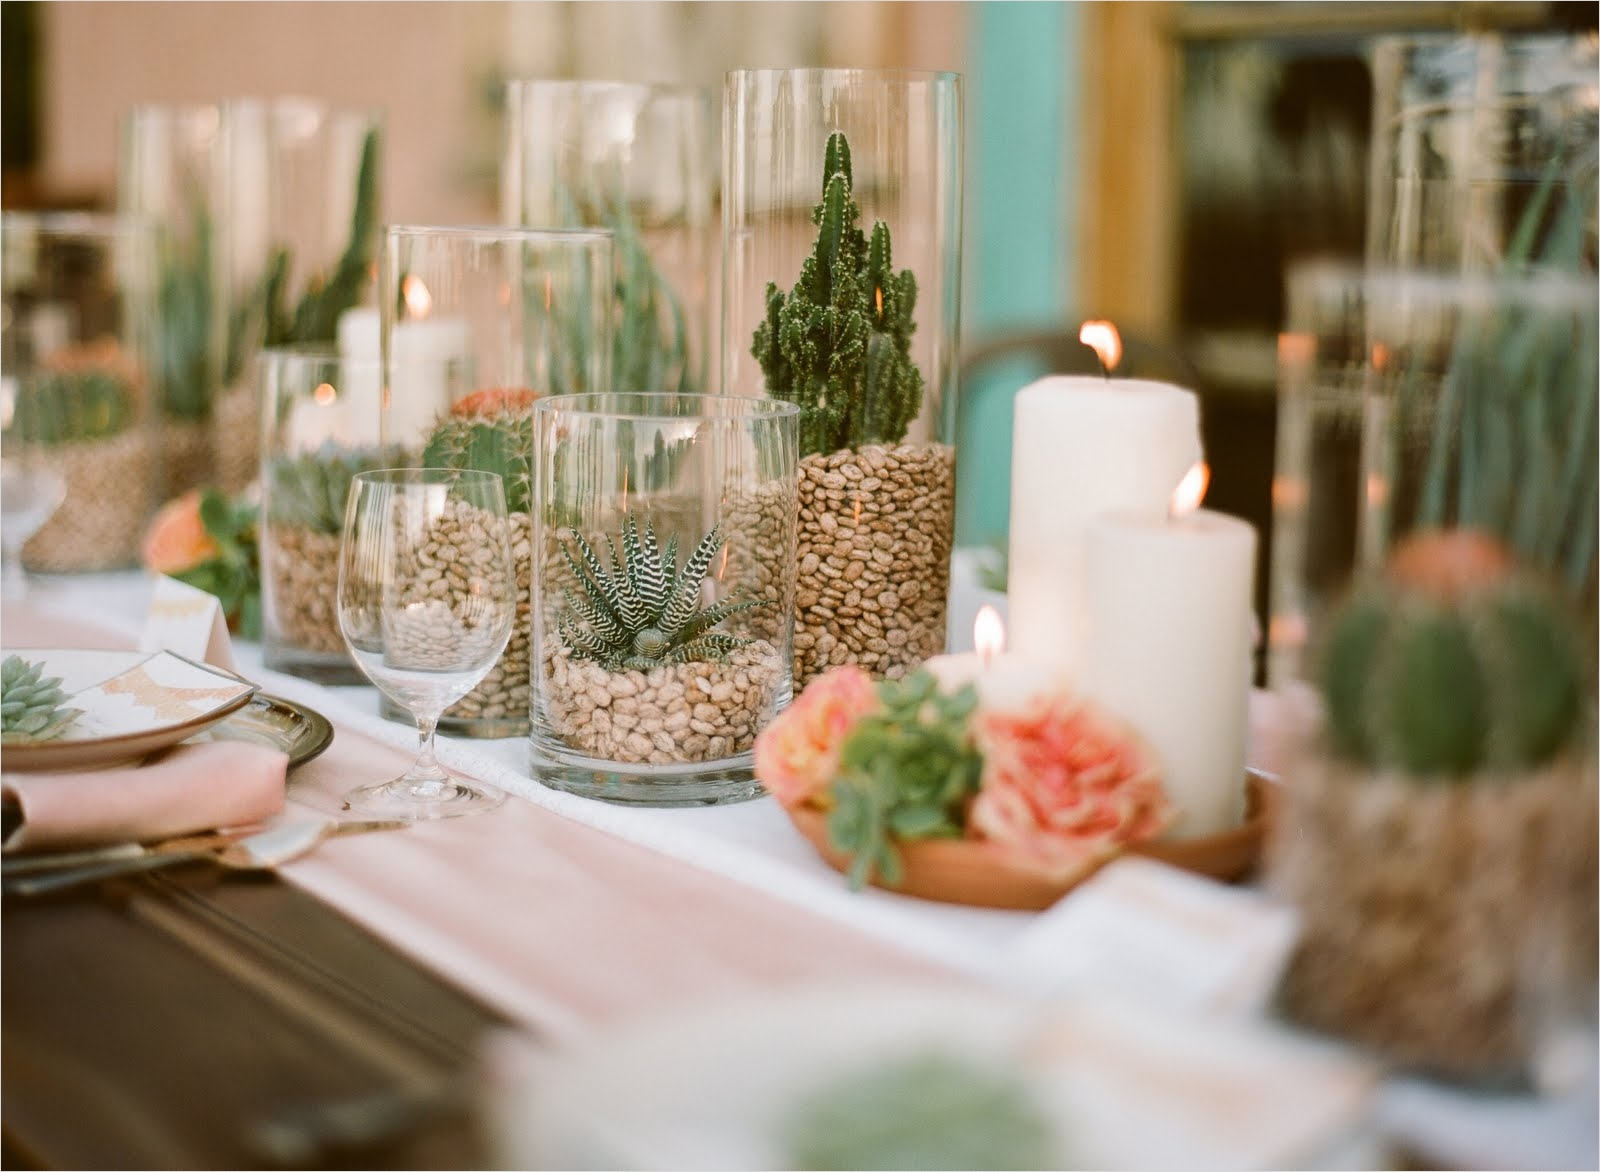 43 Beautiful Cactus Centerpiece Ideas 18 Spanish Bridal Fashion with Mexican Wedding Inspiration Papel Picado and Succulents 7